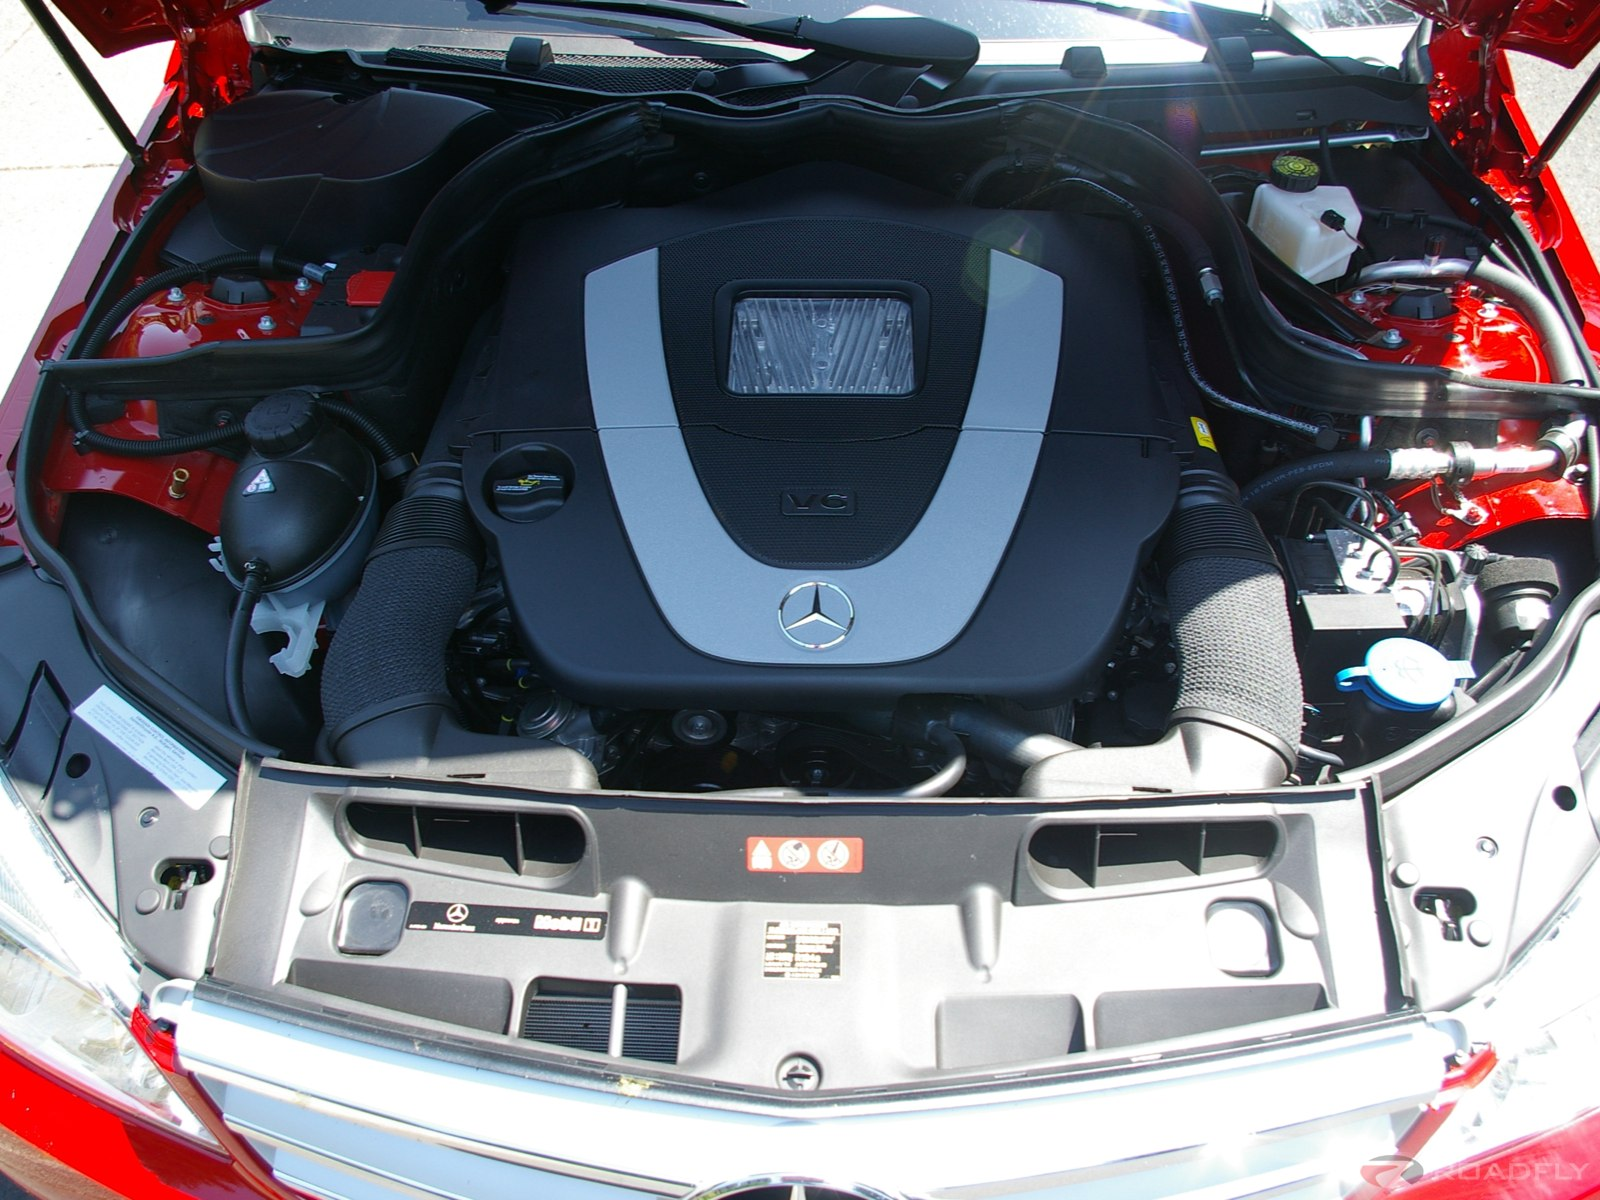 Mercedes-Benz C-Class engine #3